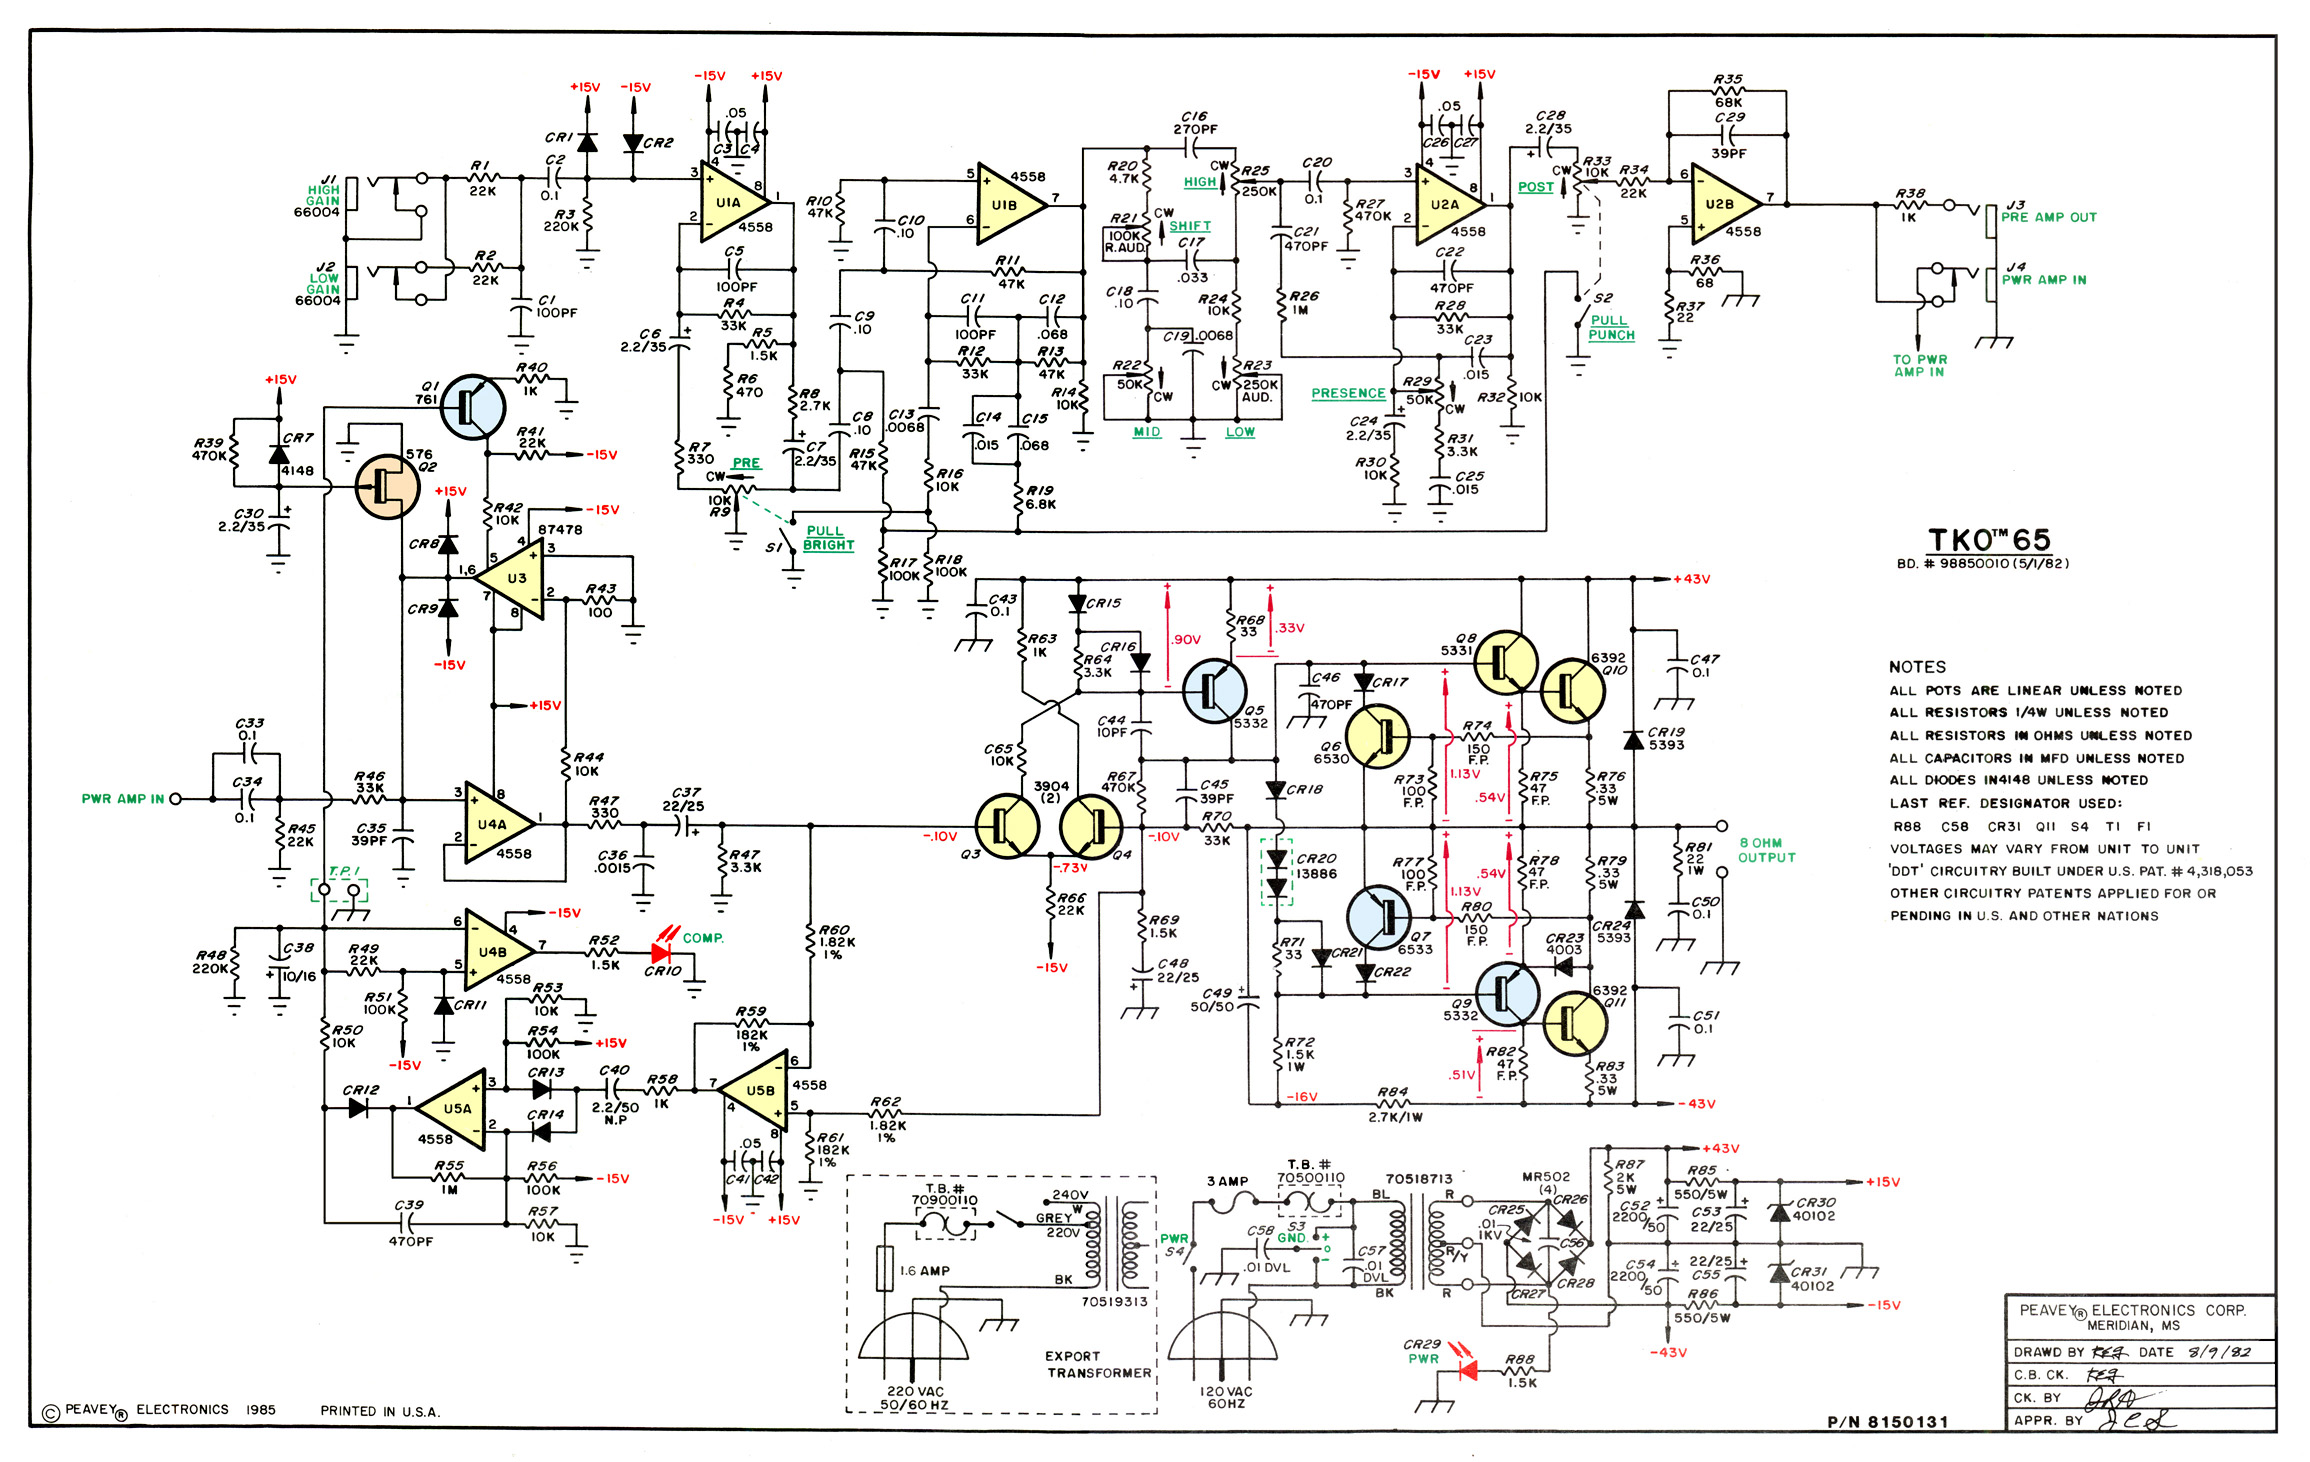 wiring diagram schematics xr html with Peavey on Subwoofer  lifier 100w Output Wiht additionally Honda Cn250 Cdi Wiring Diagram together with Yamaha Motor Diagram also Mercwireindex additionally 547281 Wiring Between Trane Xl824 Tem6 Xr17.